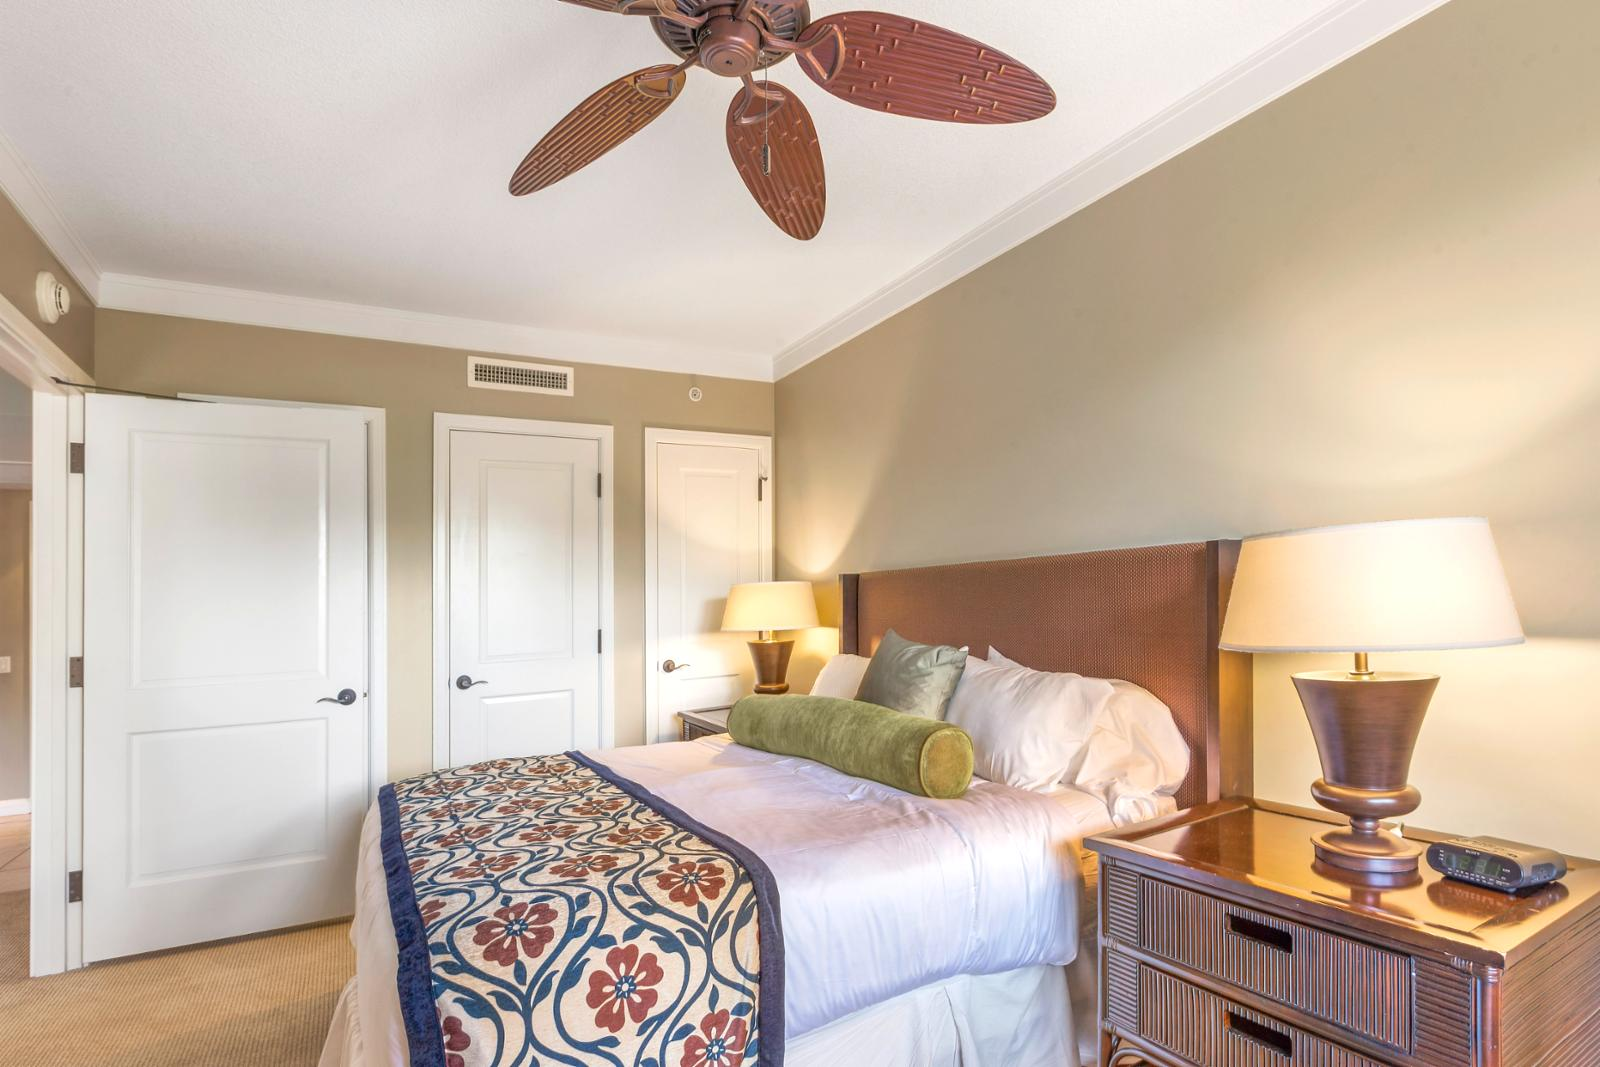 Reverse angle showing ceiling fan and additional storage as needed